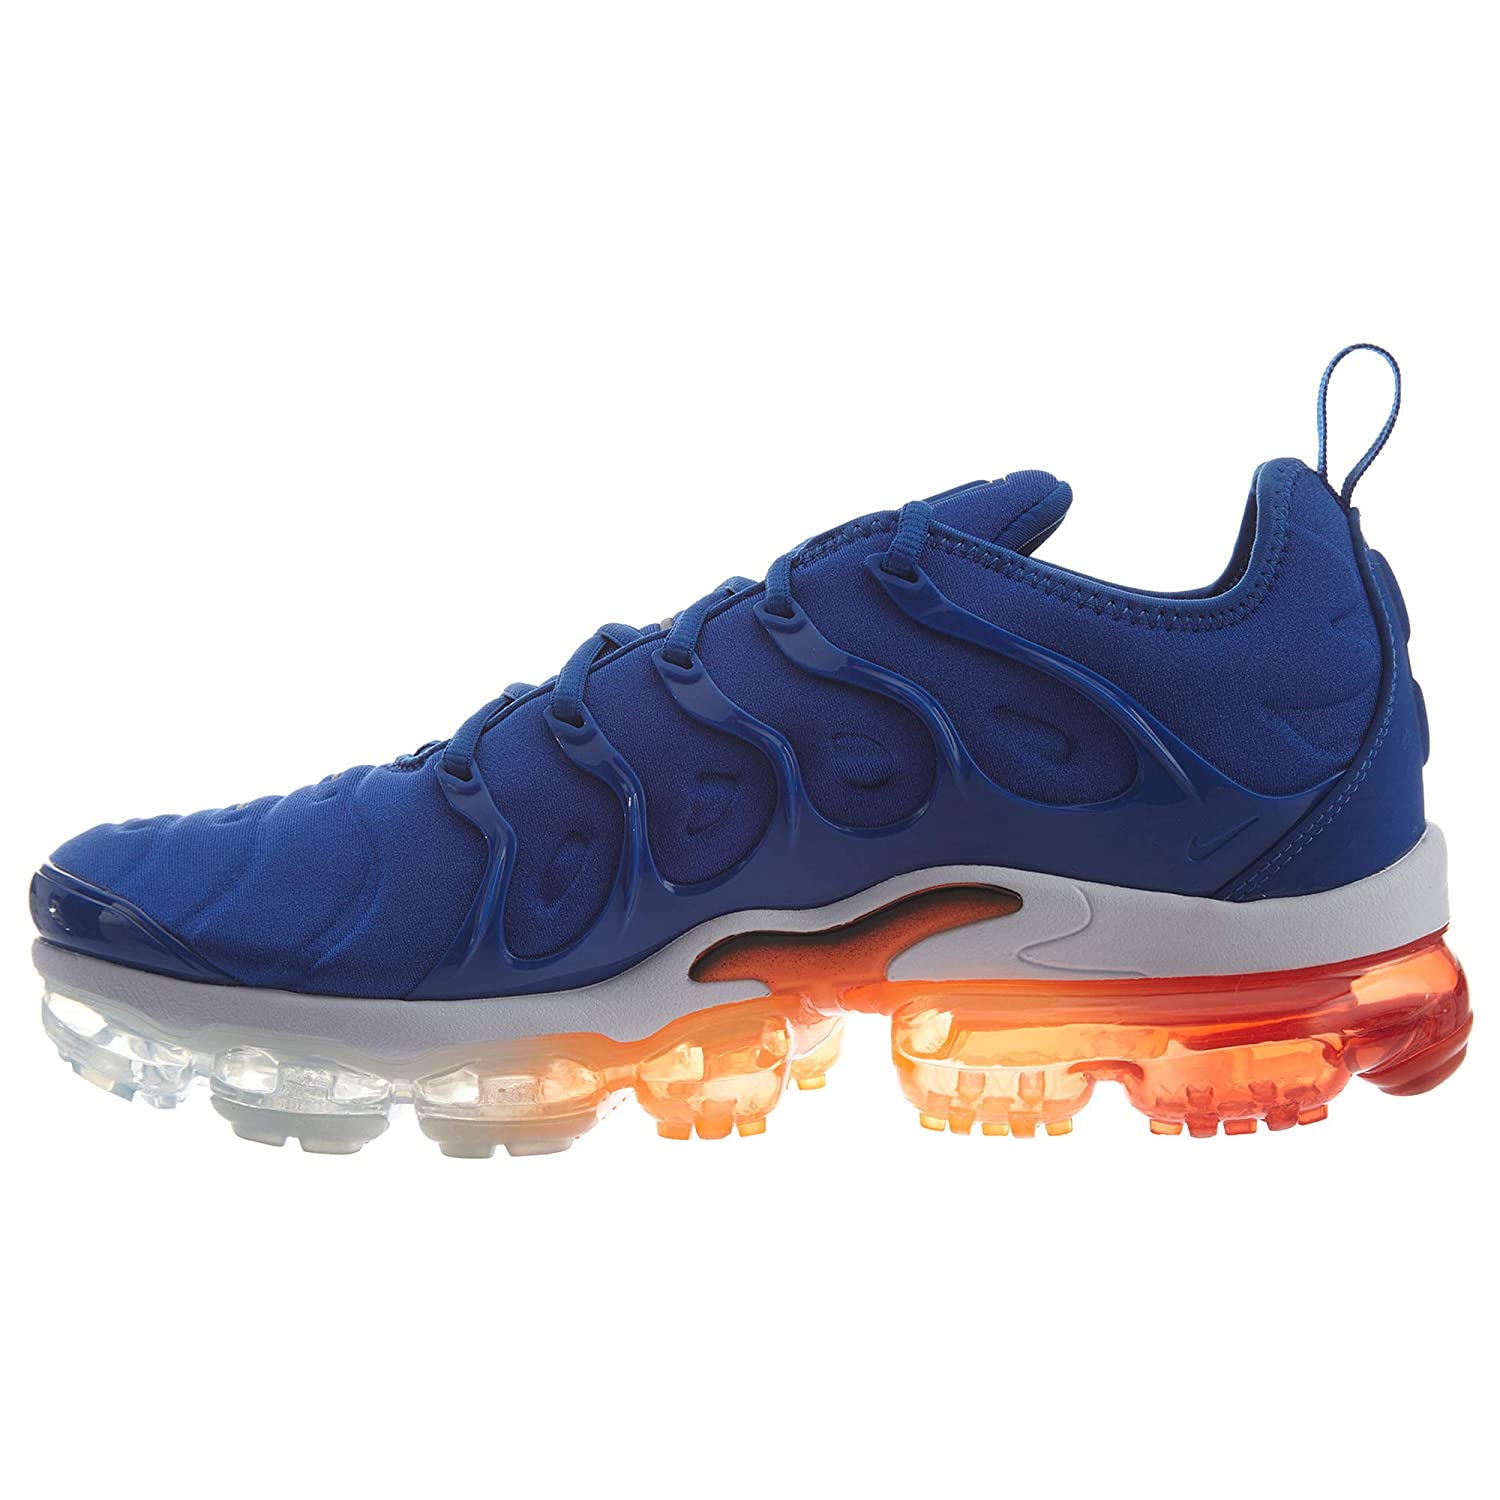 a48eac7a66 Amazon.com | Nike Air Vapormax Plus 'Wolf Grey' Mens | Fashion Sneakers